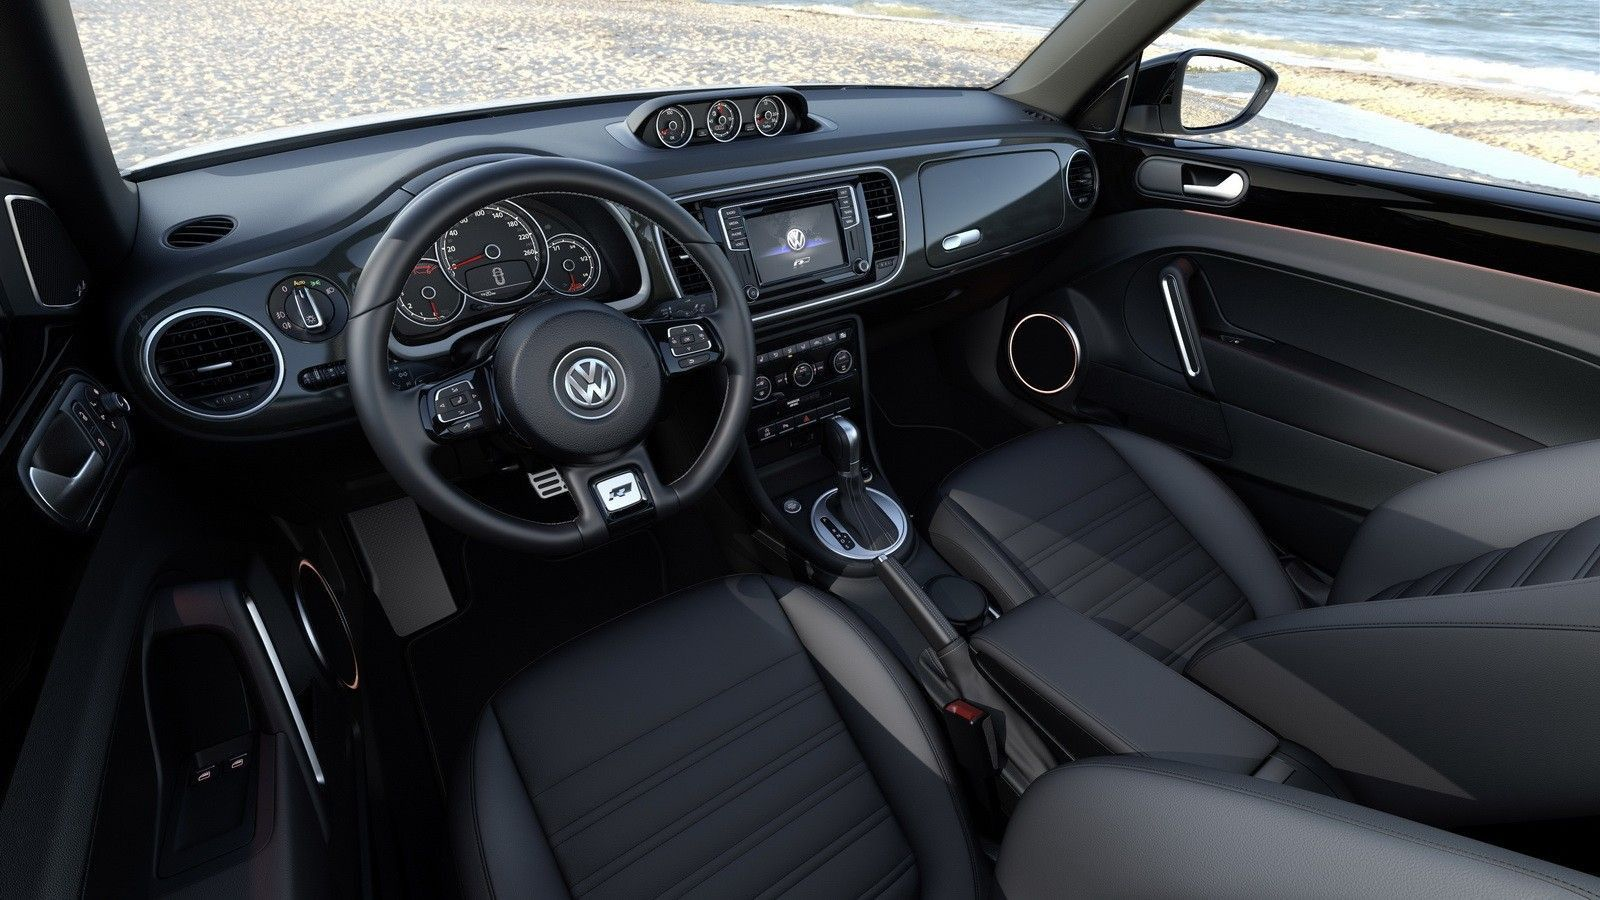 Pin By Annetthh On Car Thingz In 2020 With Images Volkswagen New Beetle Volkswagen Beetle Interior Volkswagen Beetle